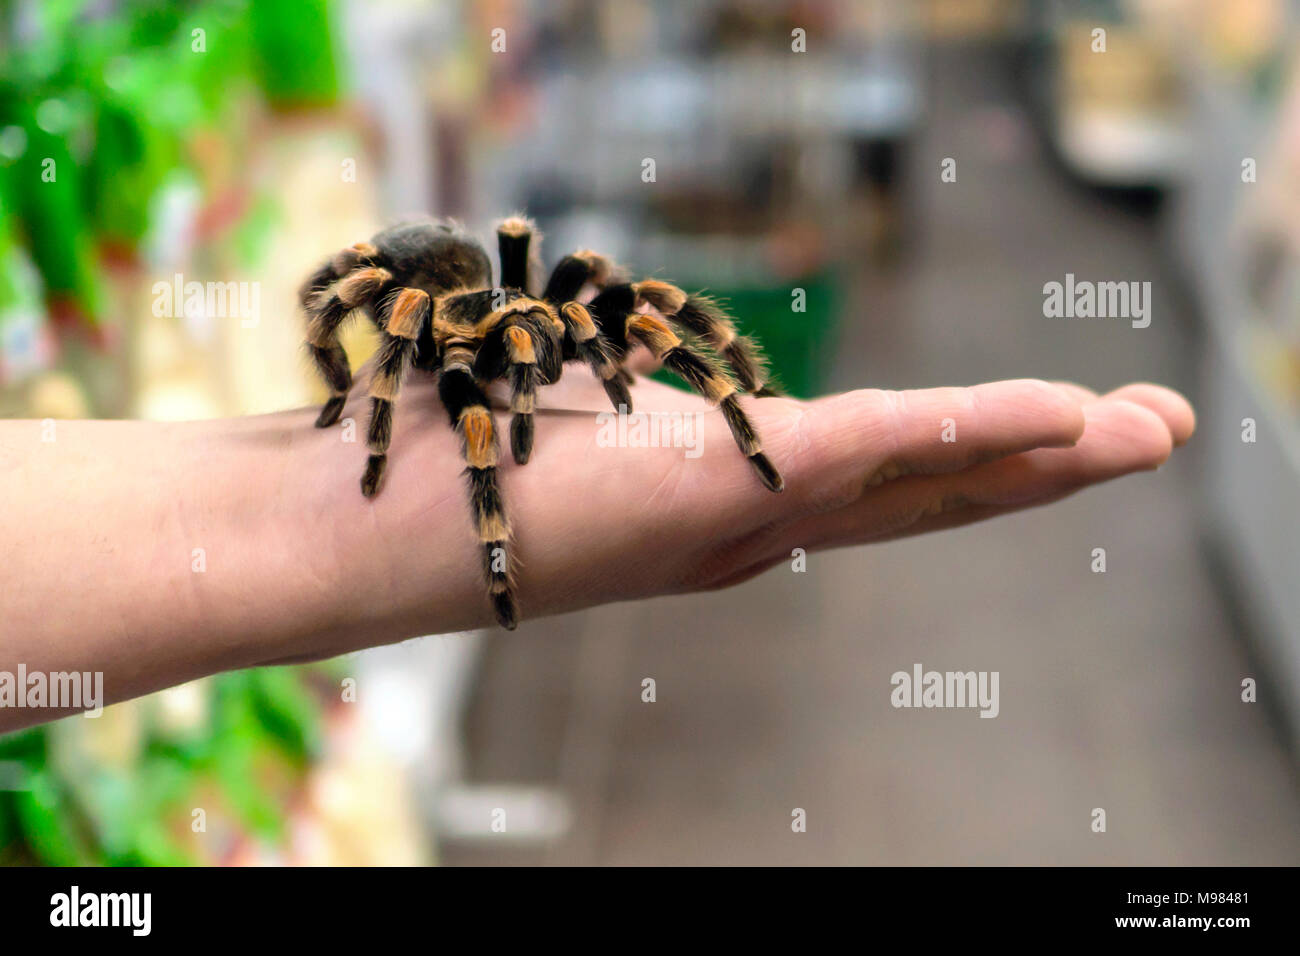 big spider tarantula sits crawling on the man's arm - Stock Image